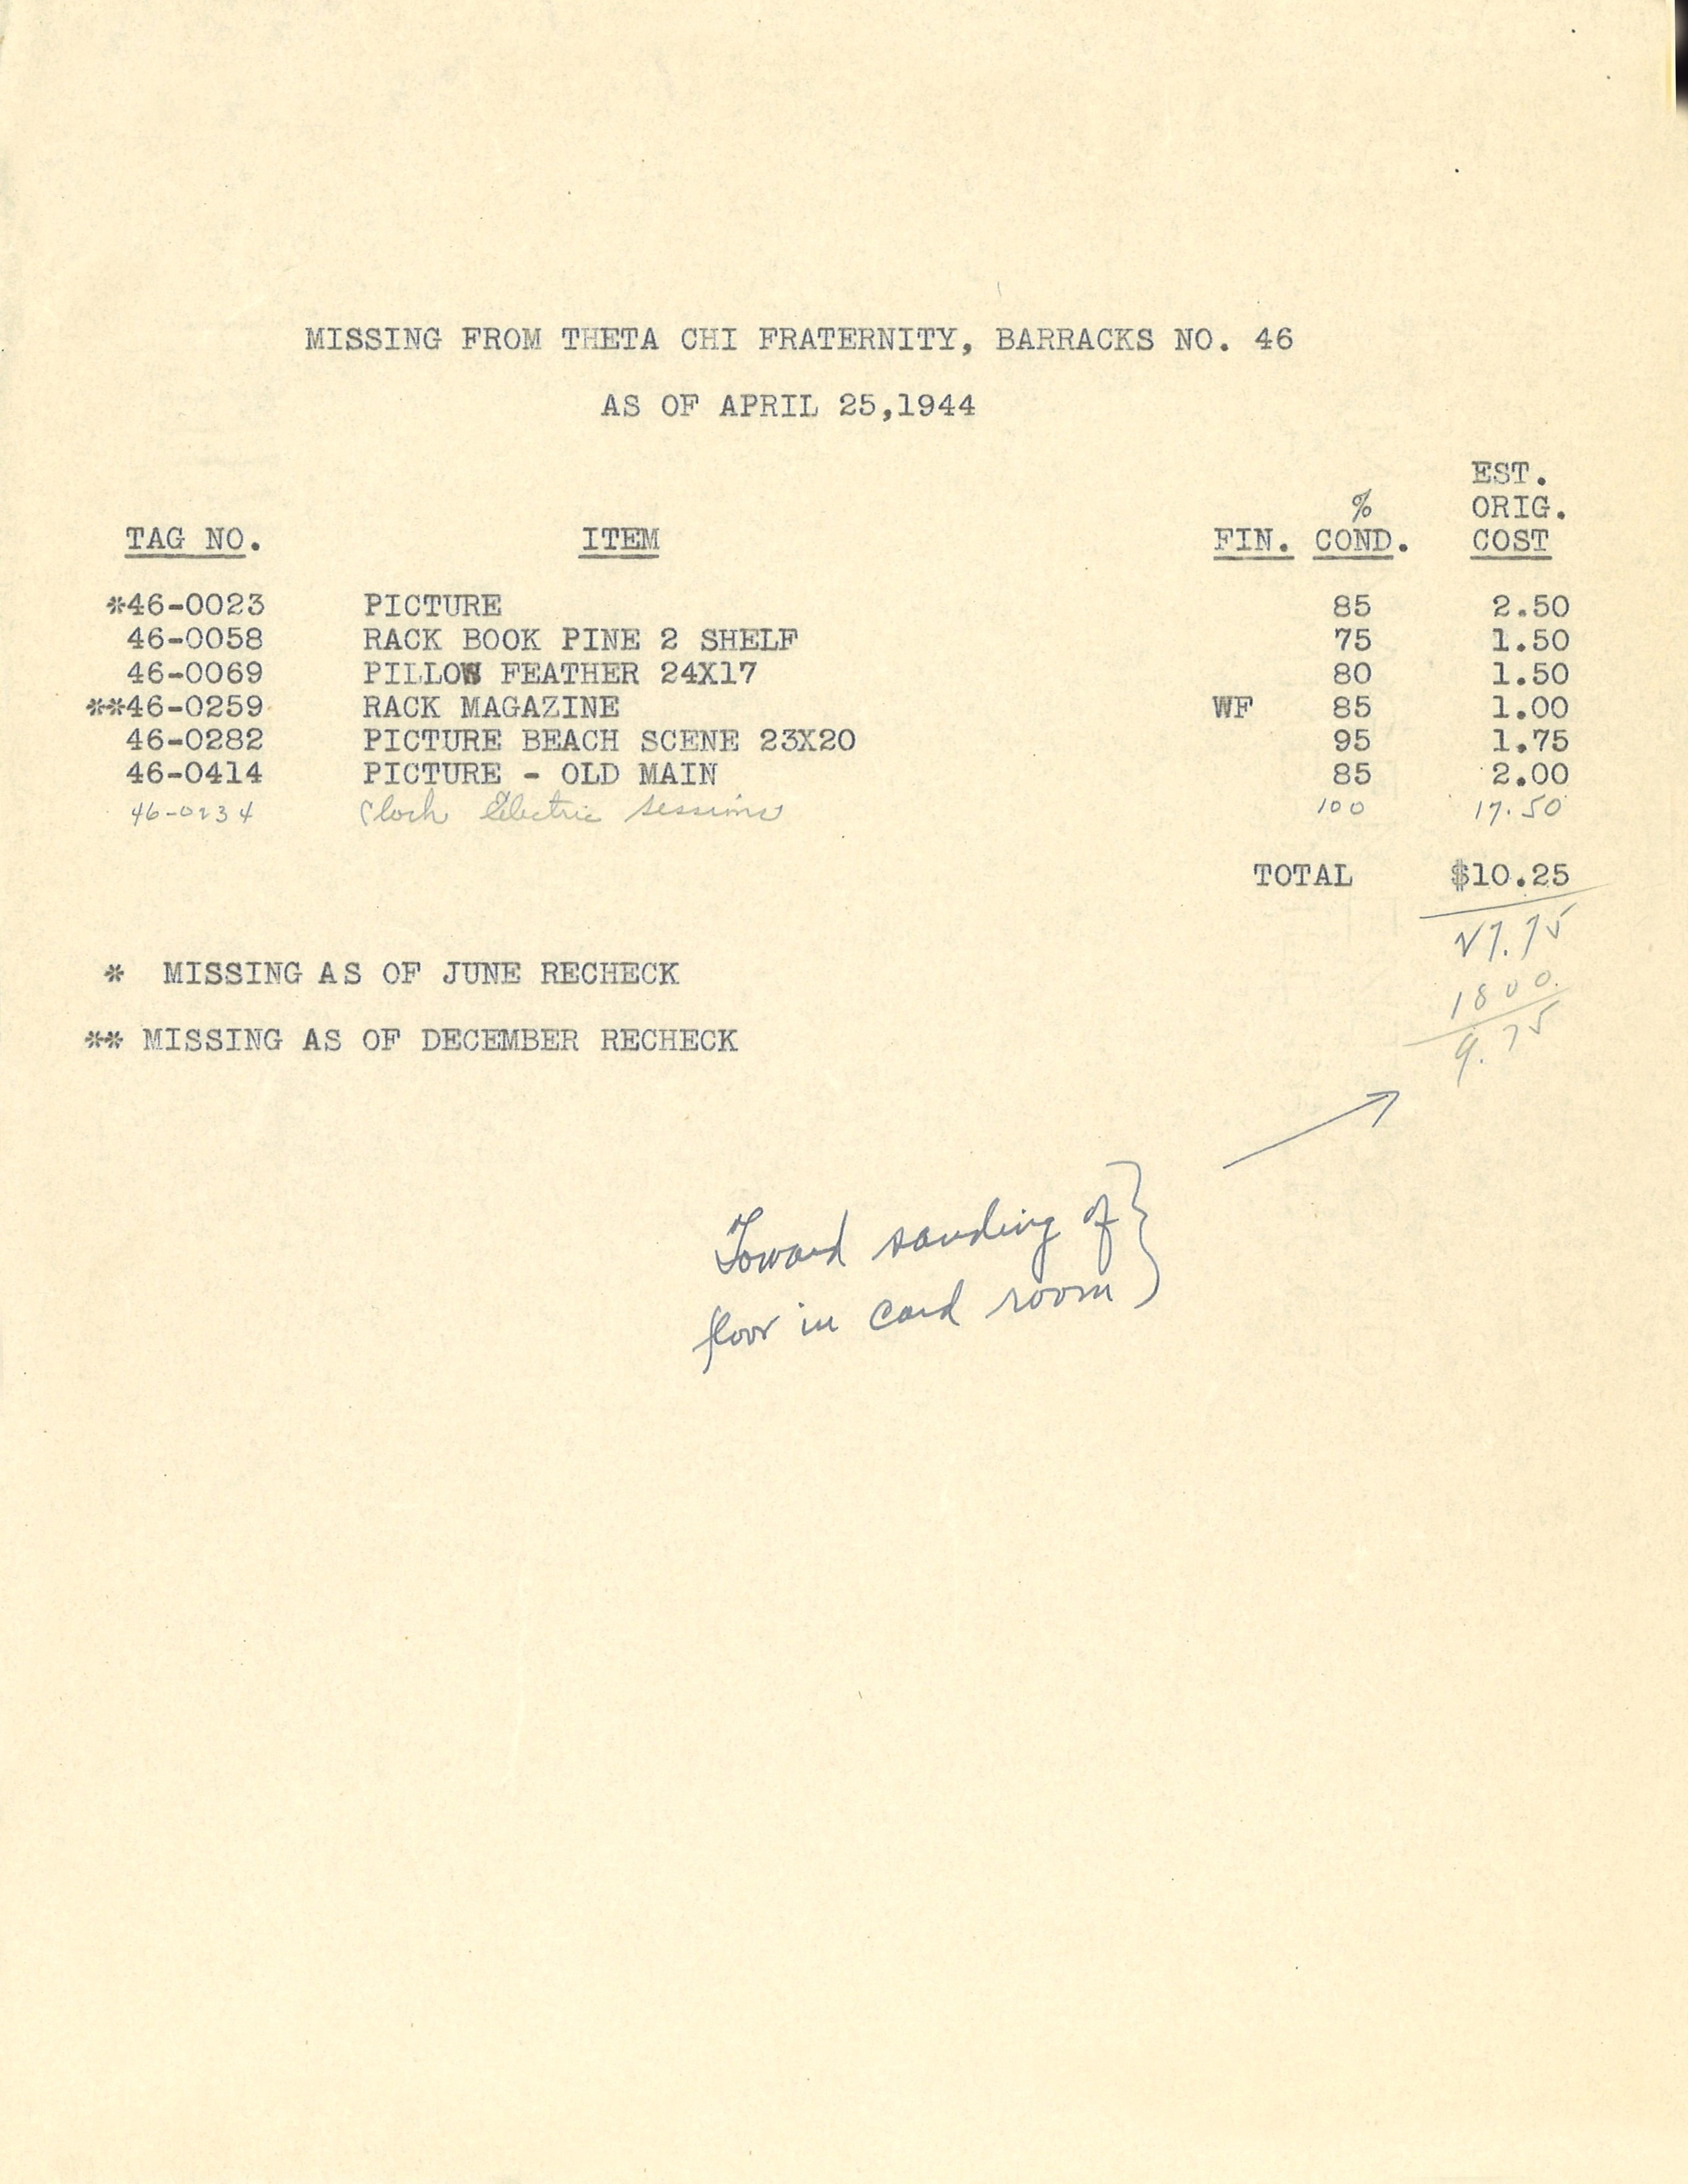 Barracks No. 46 Invoice for missing property to Pennsylvania State College from Theta Chi of Penn State, 4/15/1944